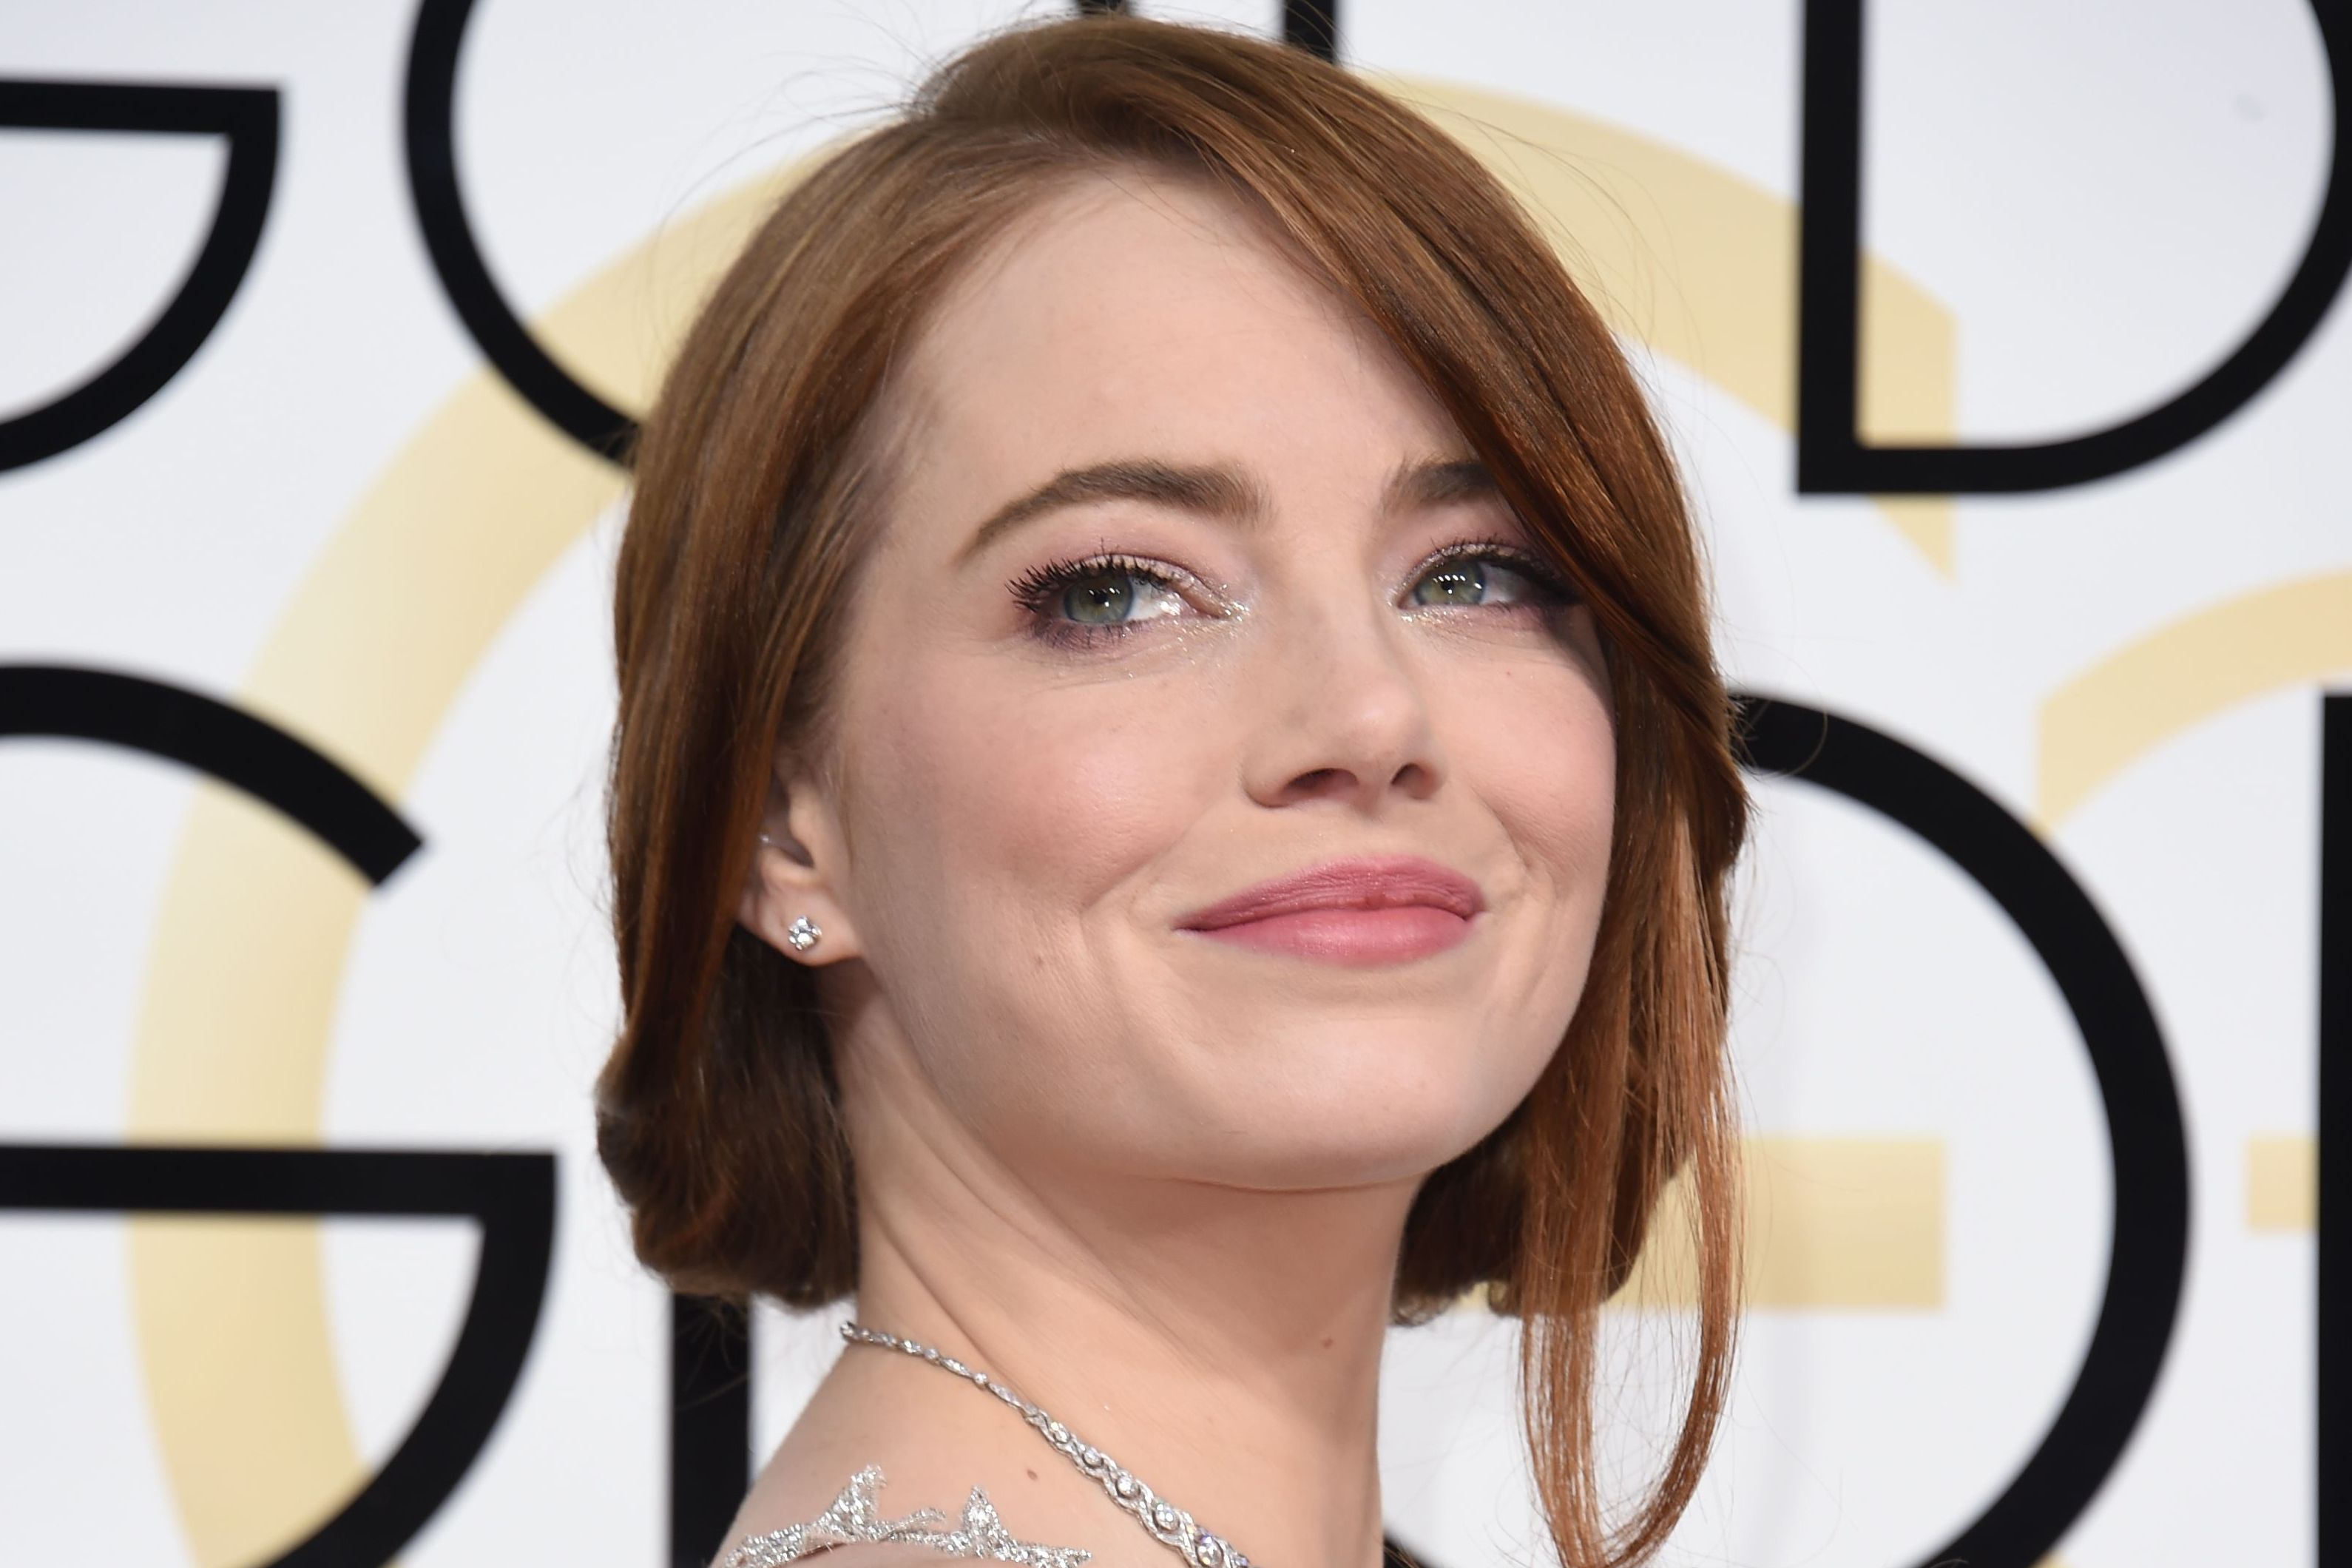 Emma Stone arrives at the 74th annual Golden Globe Awards, on Jan. 8, 2017 in Beverly Hills, Calif.